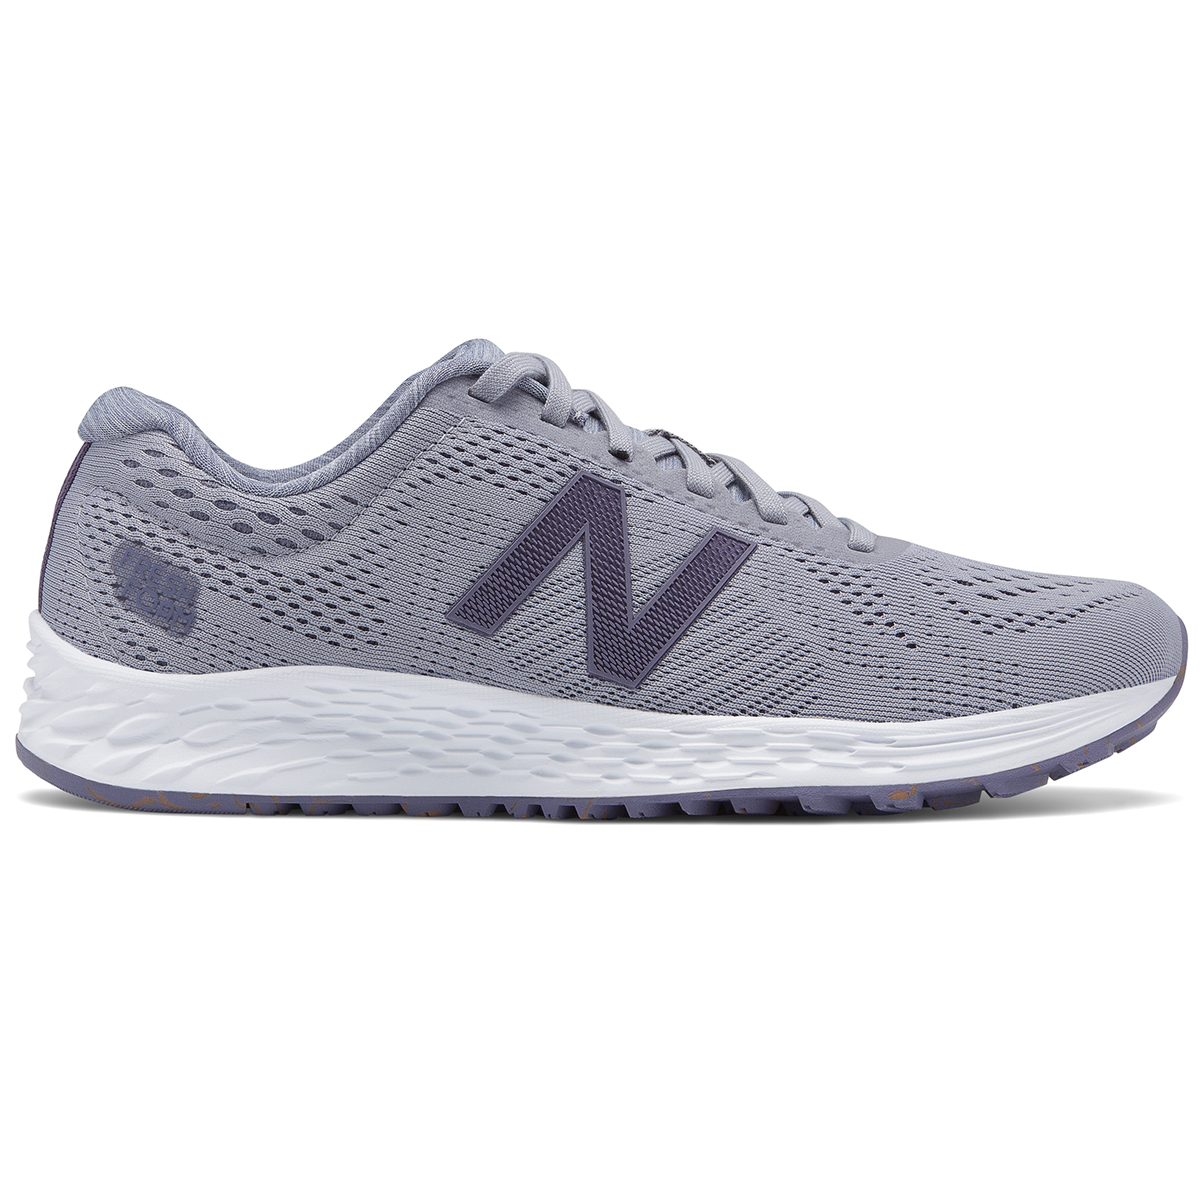 New Balance Women's Fresh Foam Arishi Sport Running Shoes - Purple, 7.5